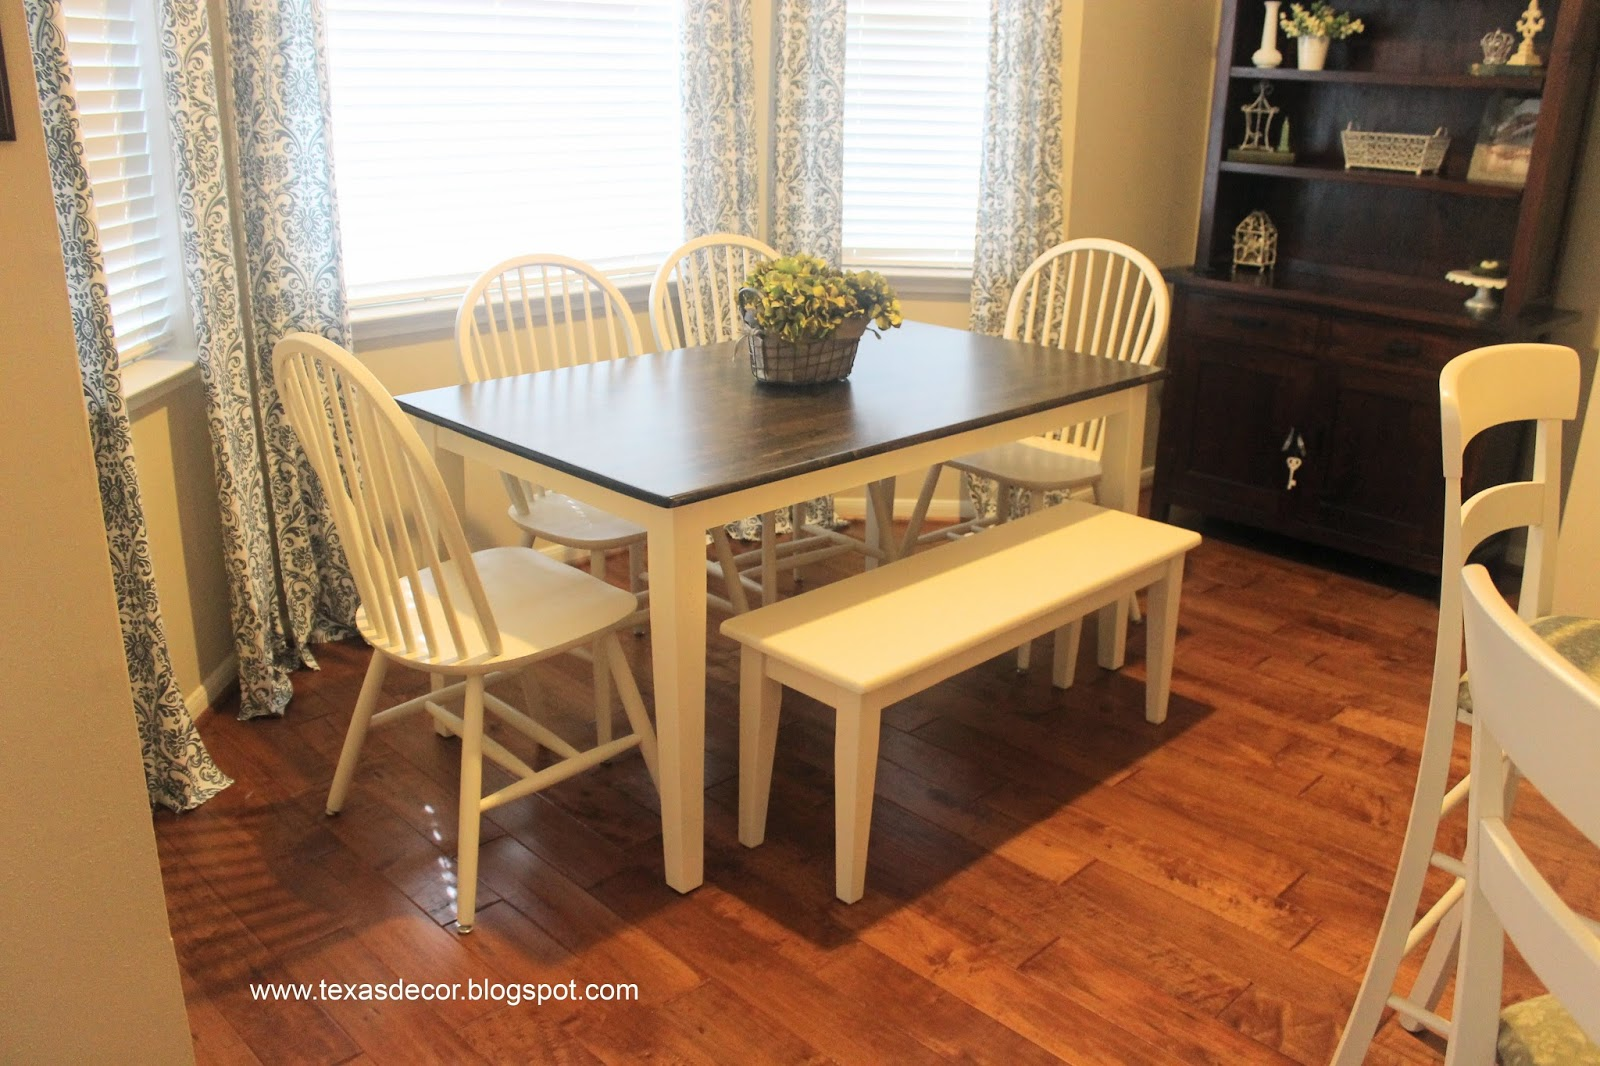 Texas decor painted and stained kitchen table a tutorial for Kitchen table top